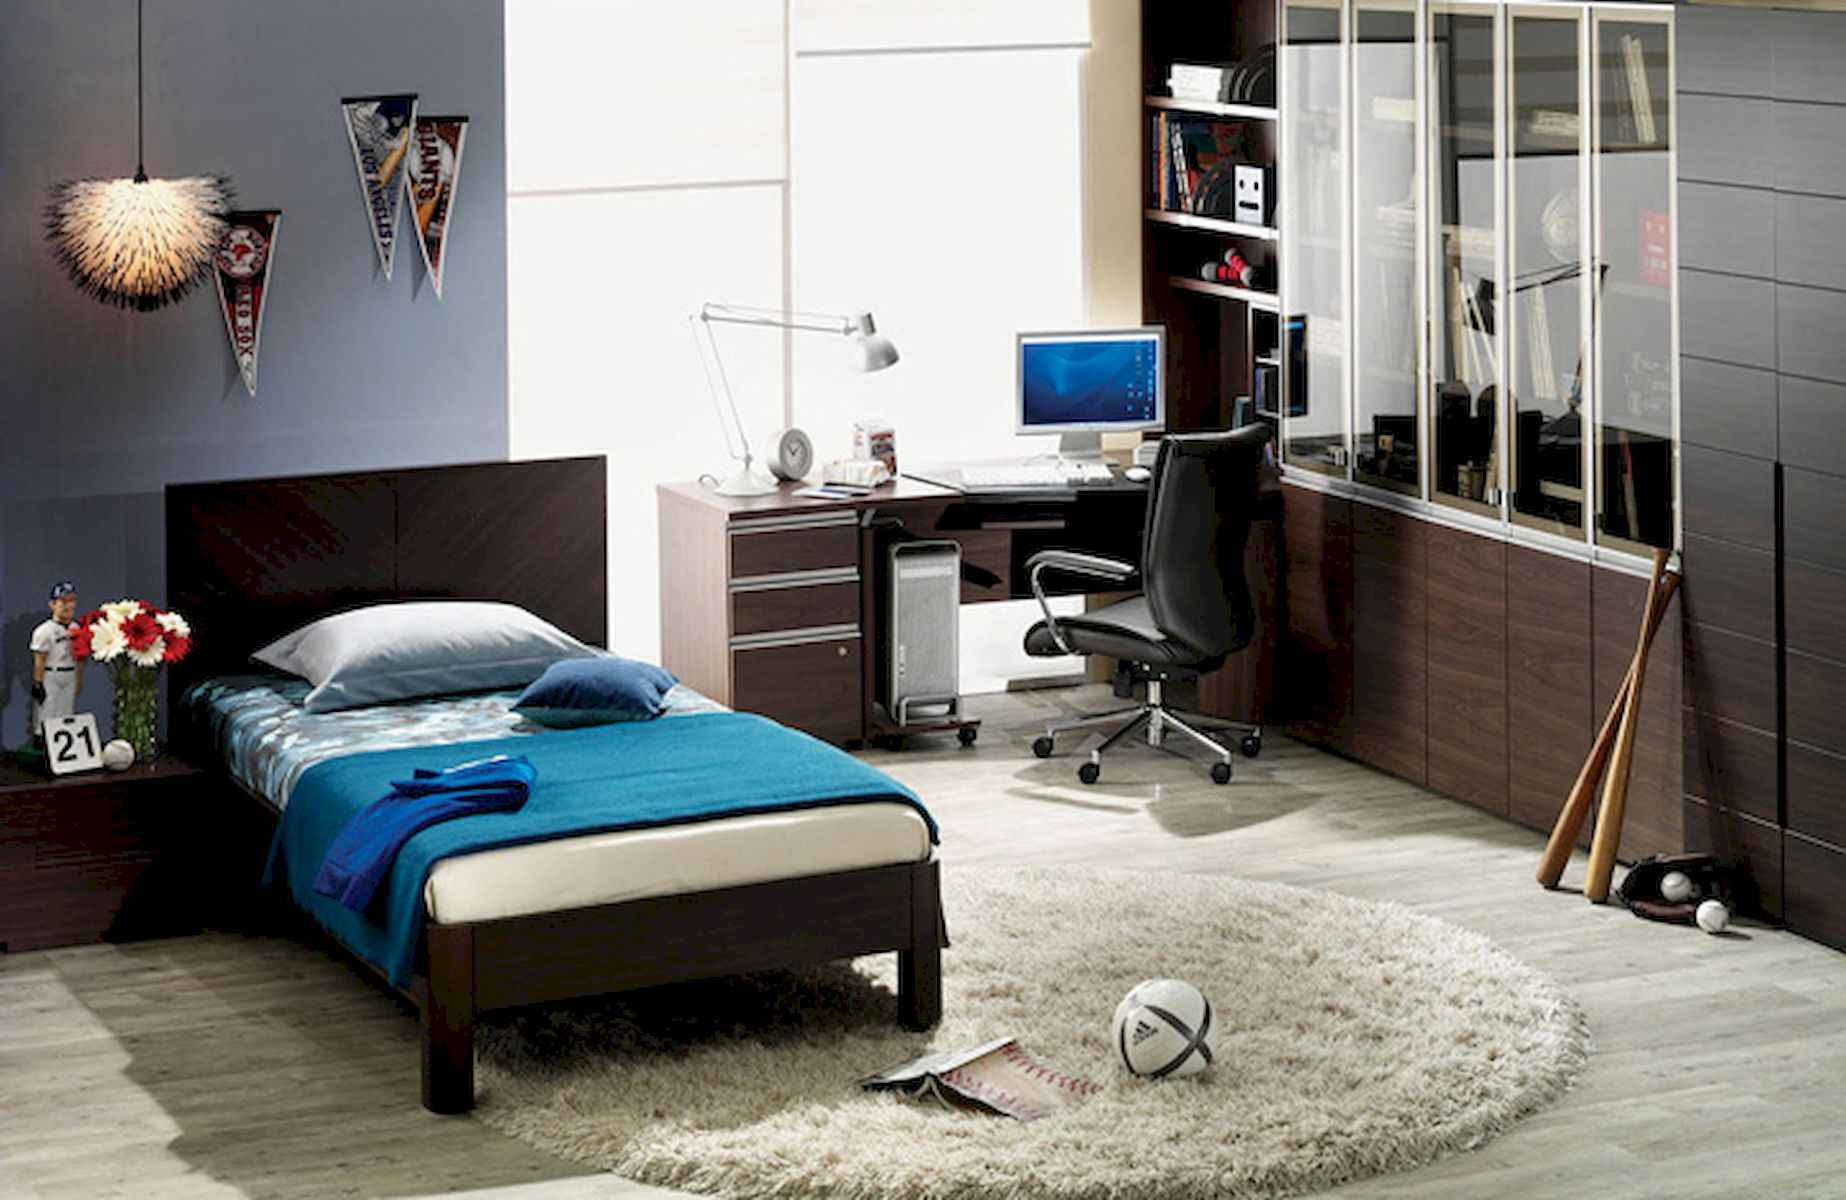 60 Gorgeous College Dorm Room Decorating Ideas And Makeover (49)